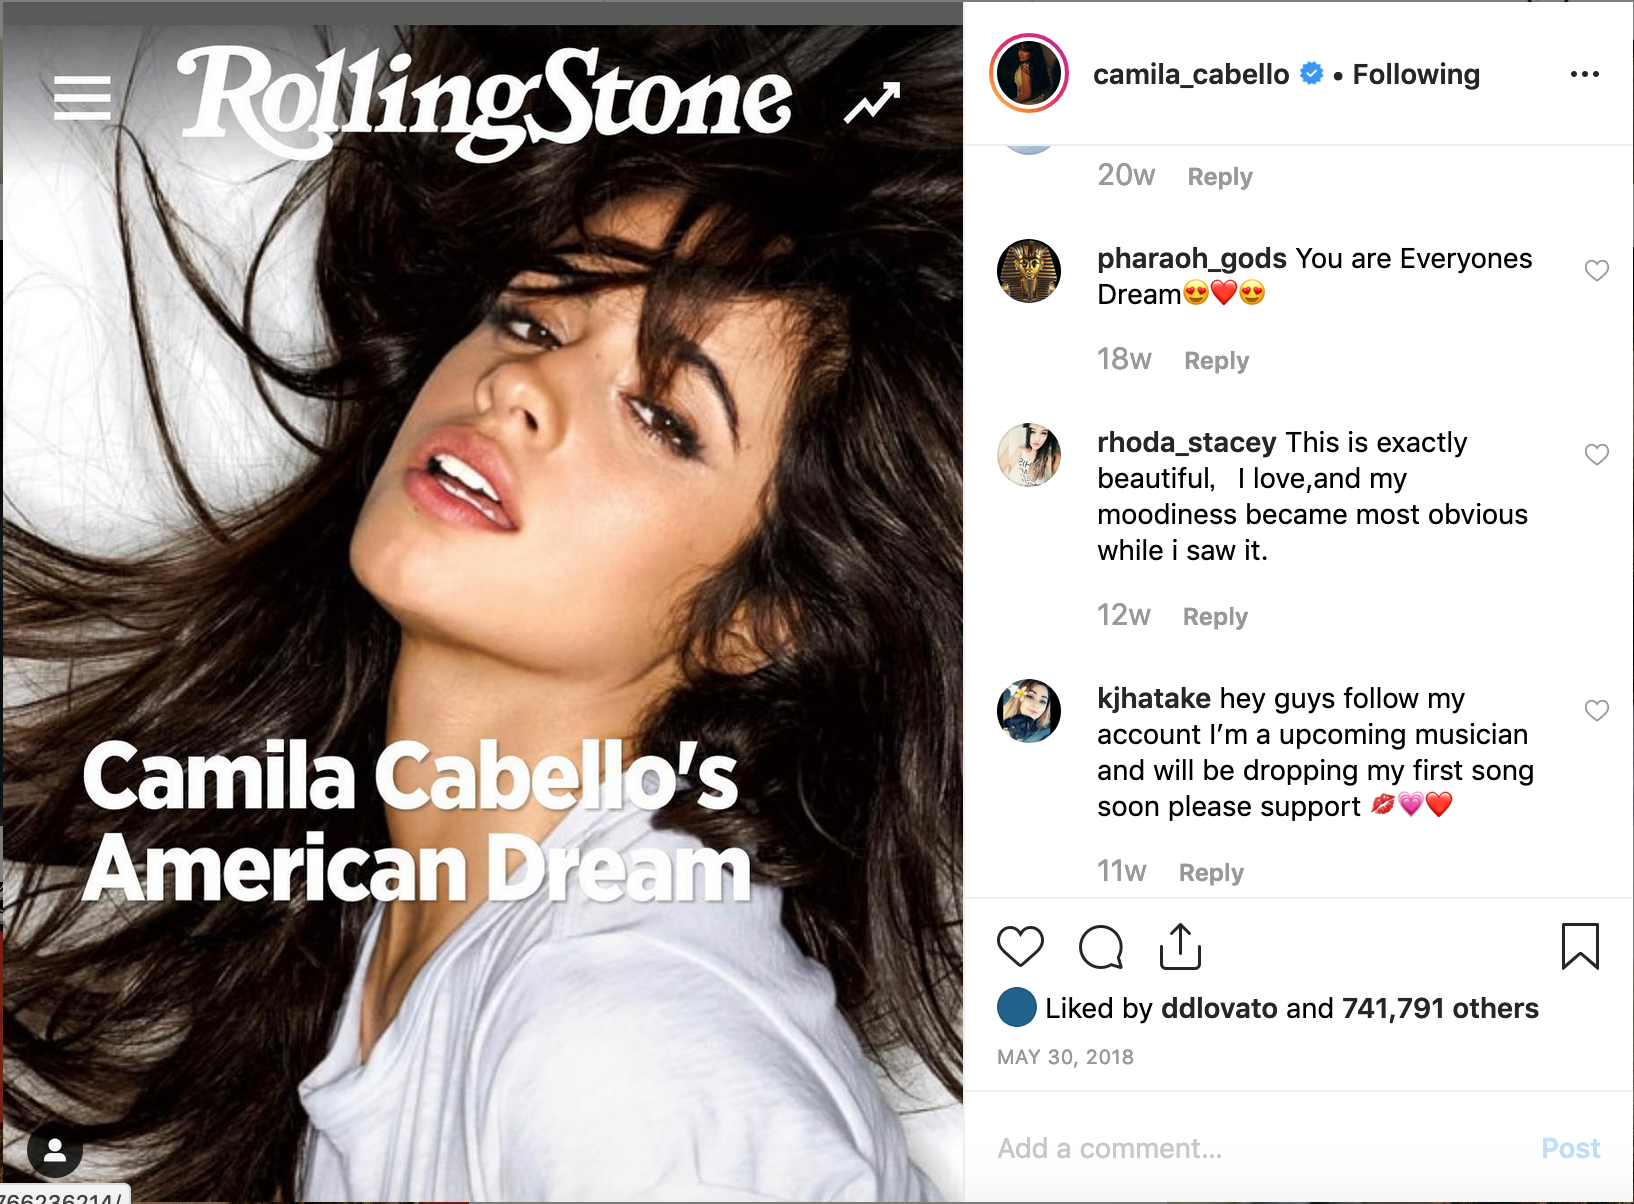 Camila shares her Rolling Stone Cover Story on Instagram